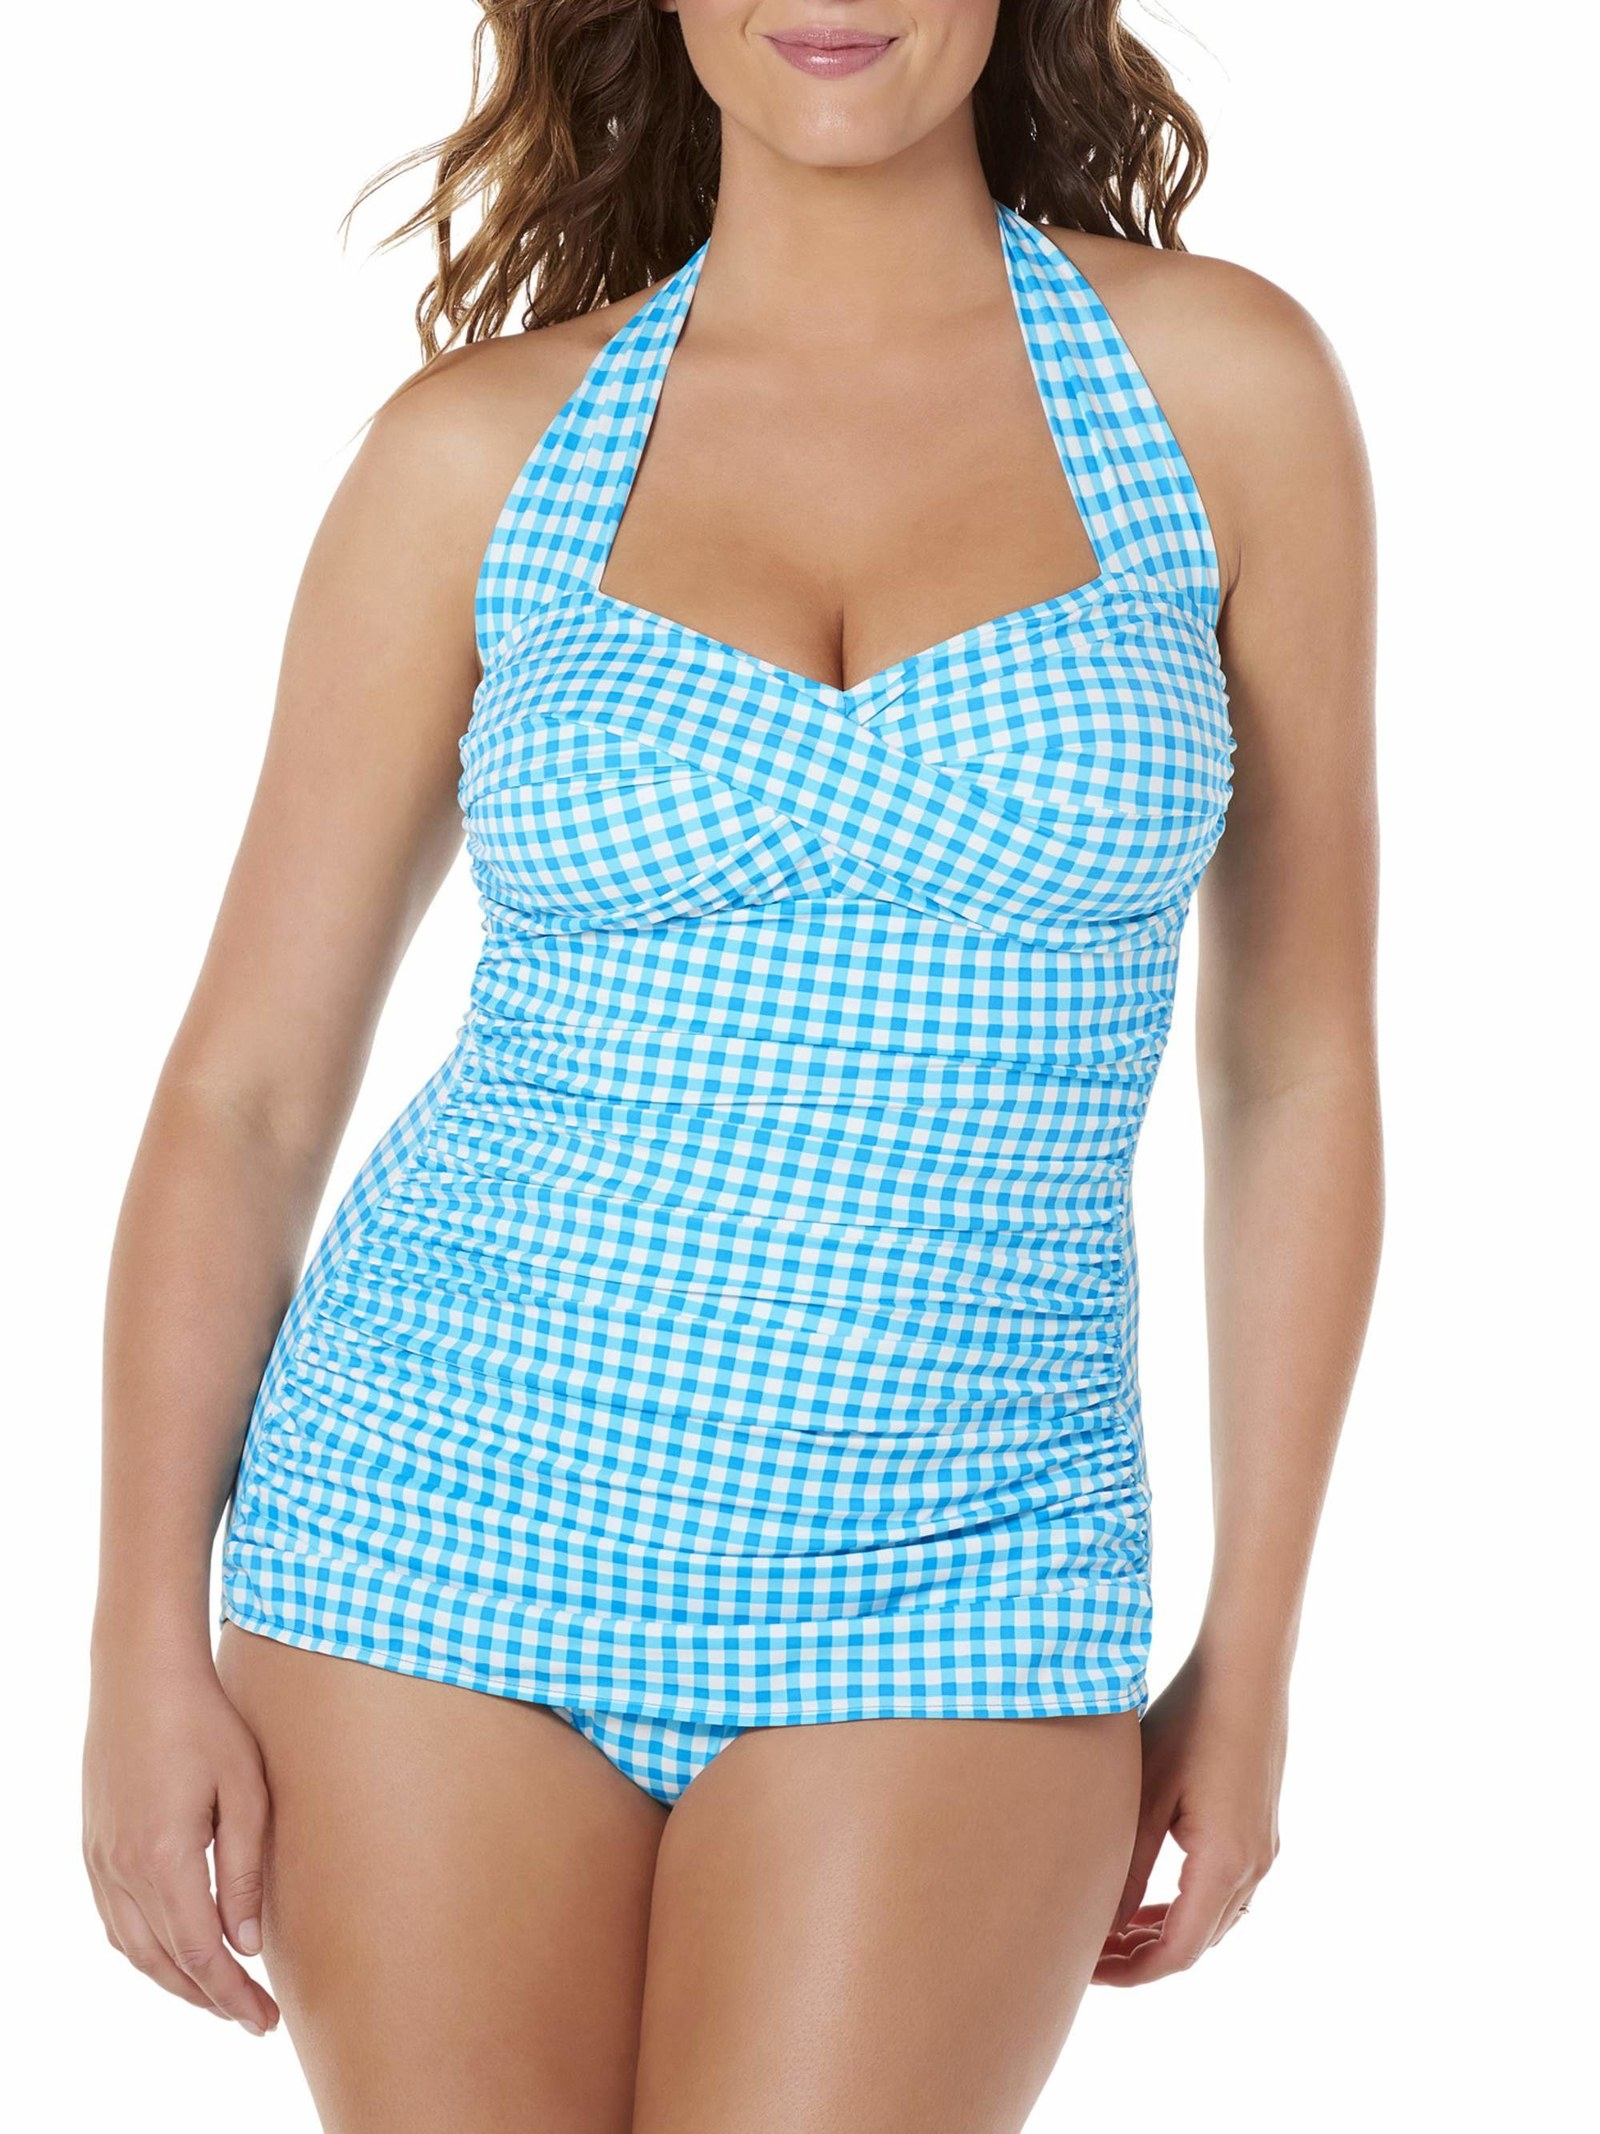 7944cc8395 9. A gingham number you can pair with shorts or a skirt for a  picture-perfect picnic look.